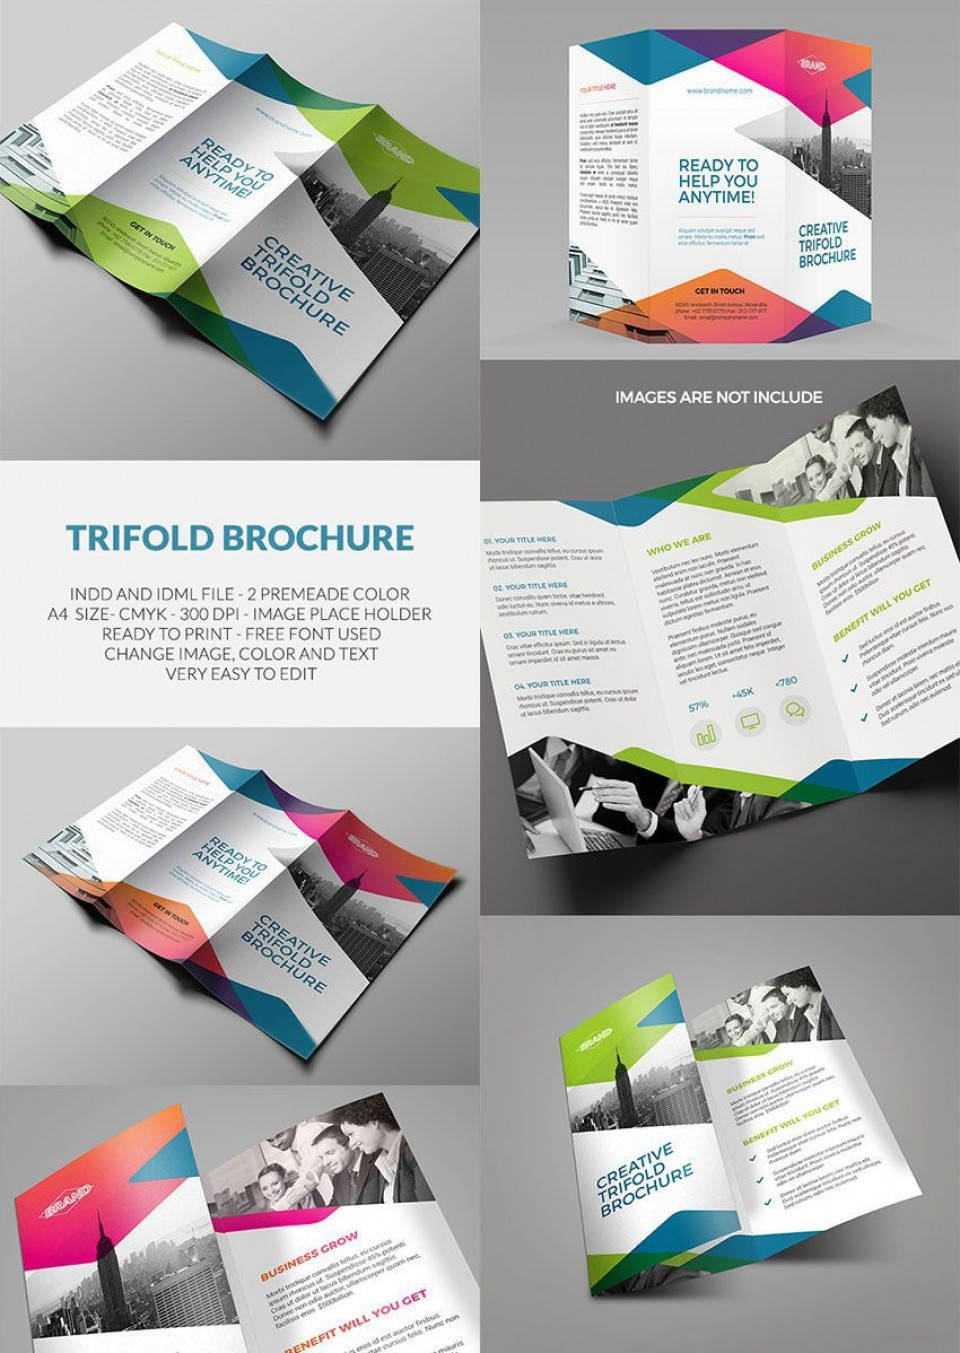 002 Outstanding Tri Fold Brochure Indesign Template Picture  Free Adobe960